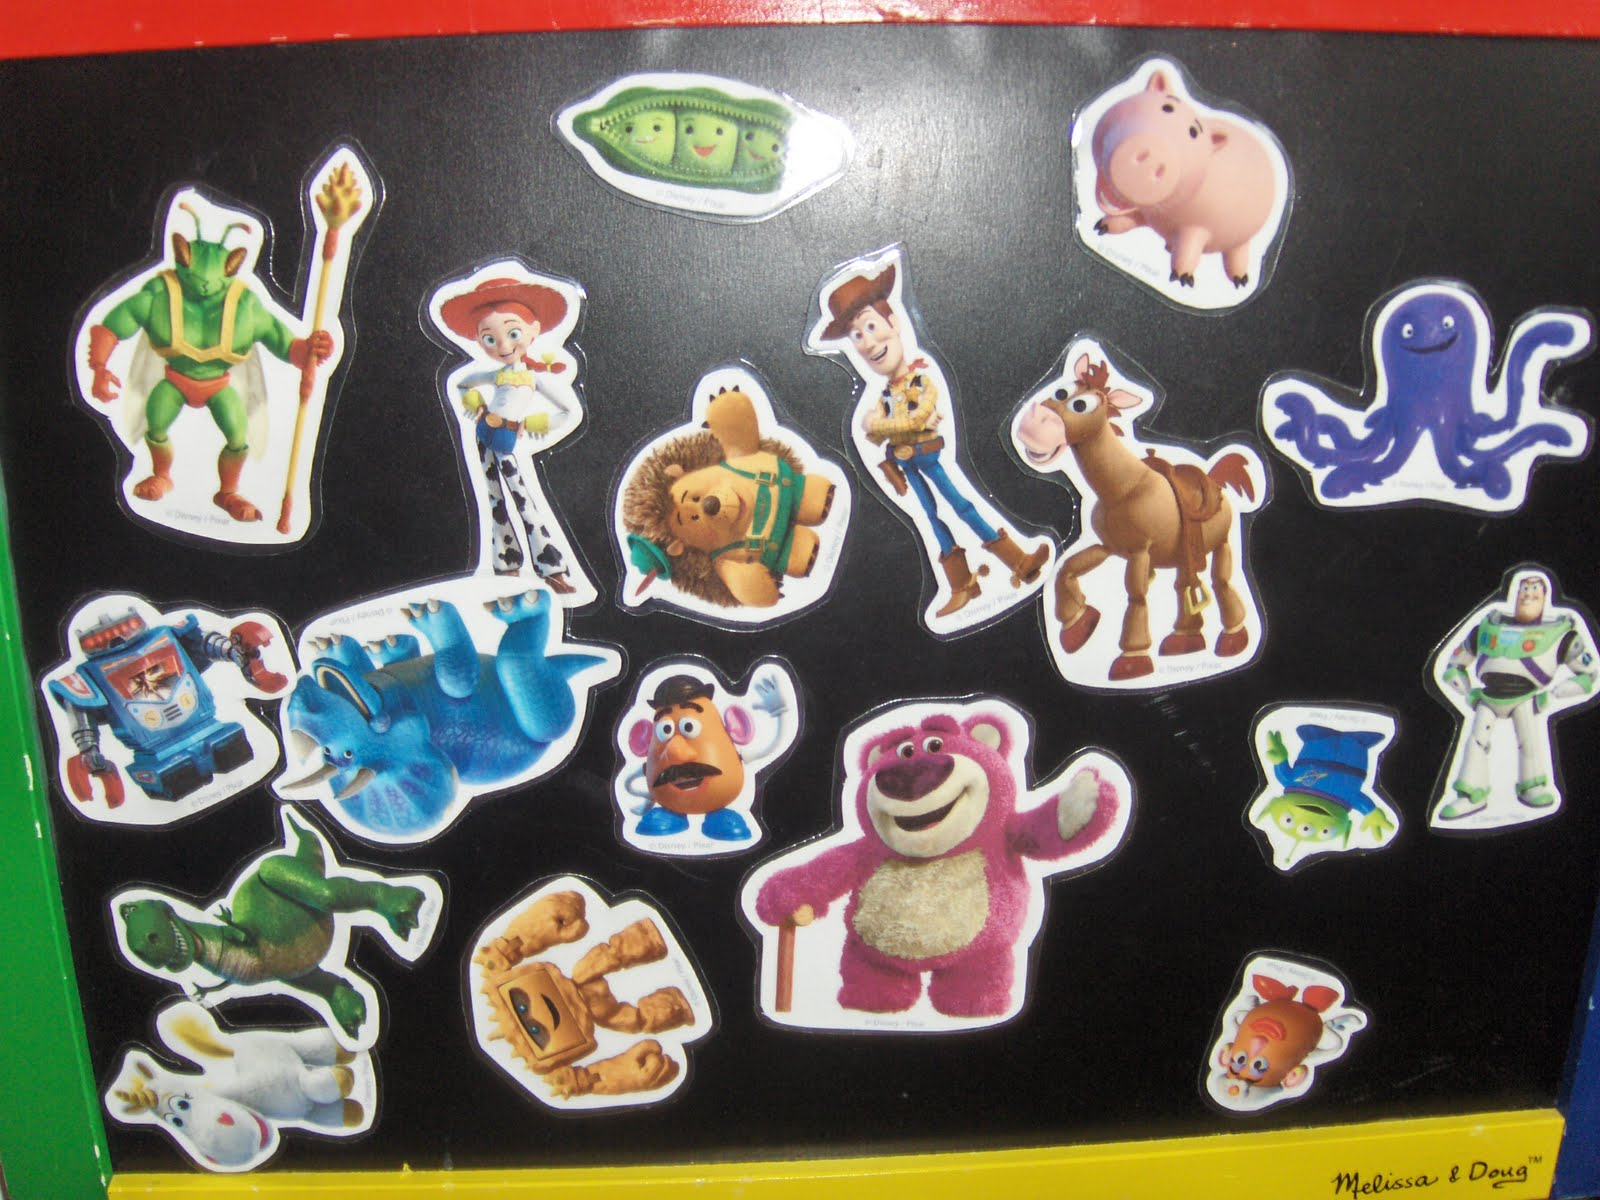 printable pictures of toy story characters